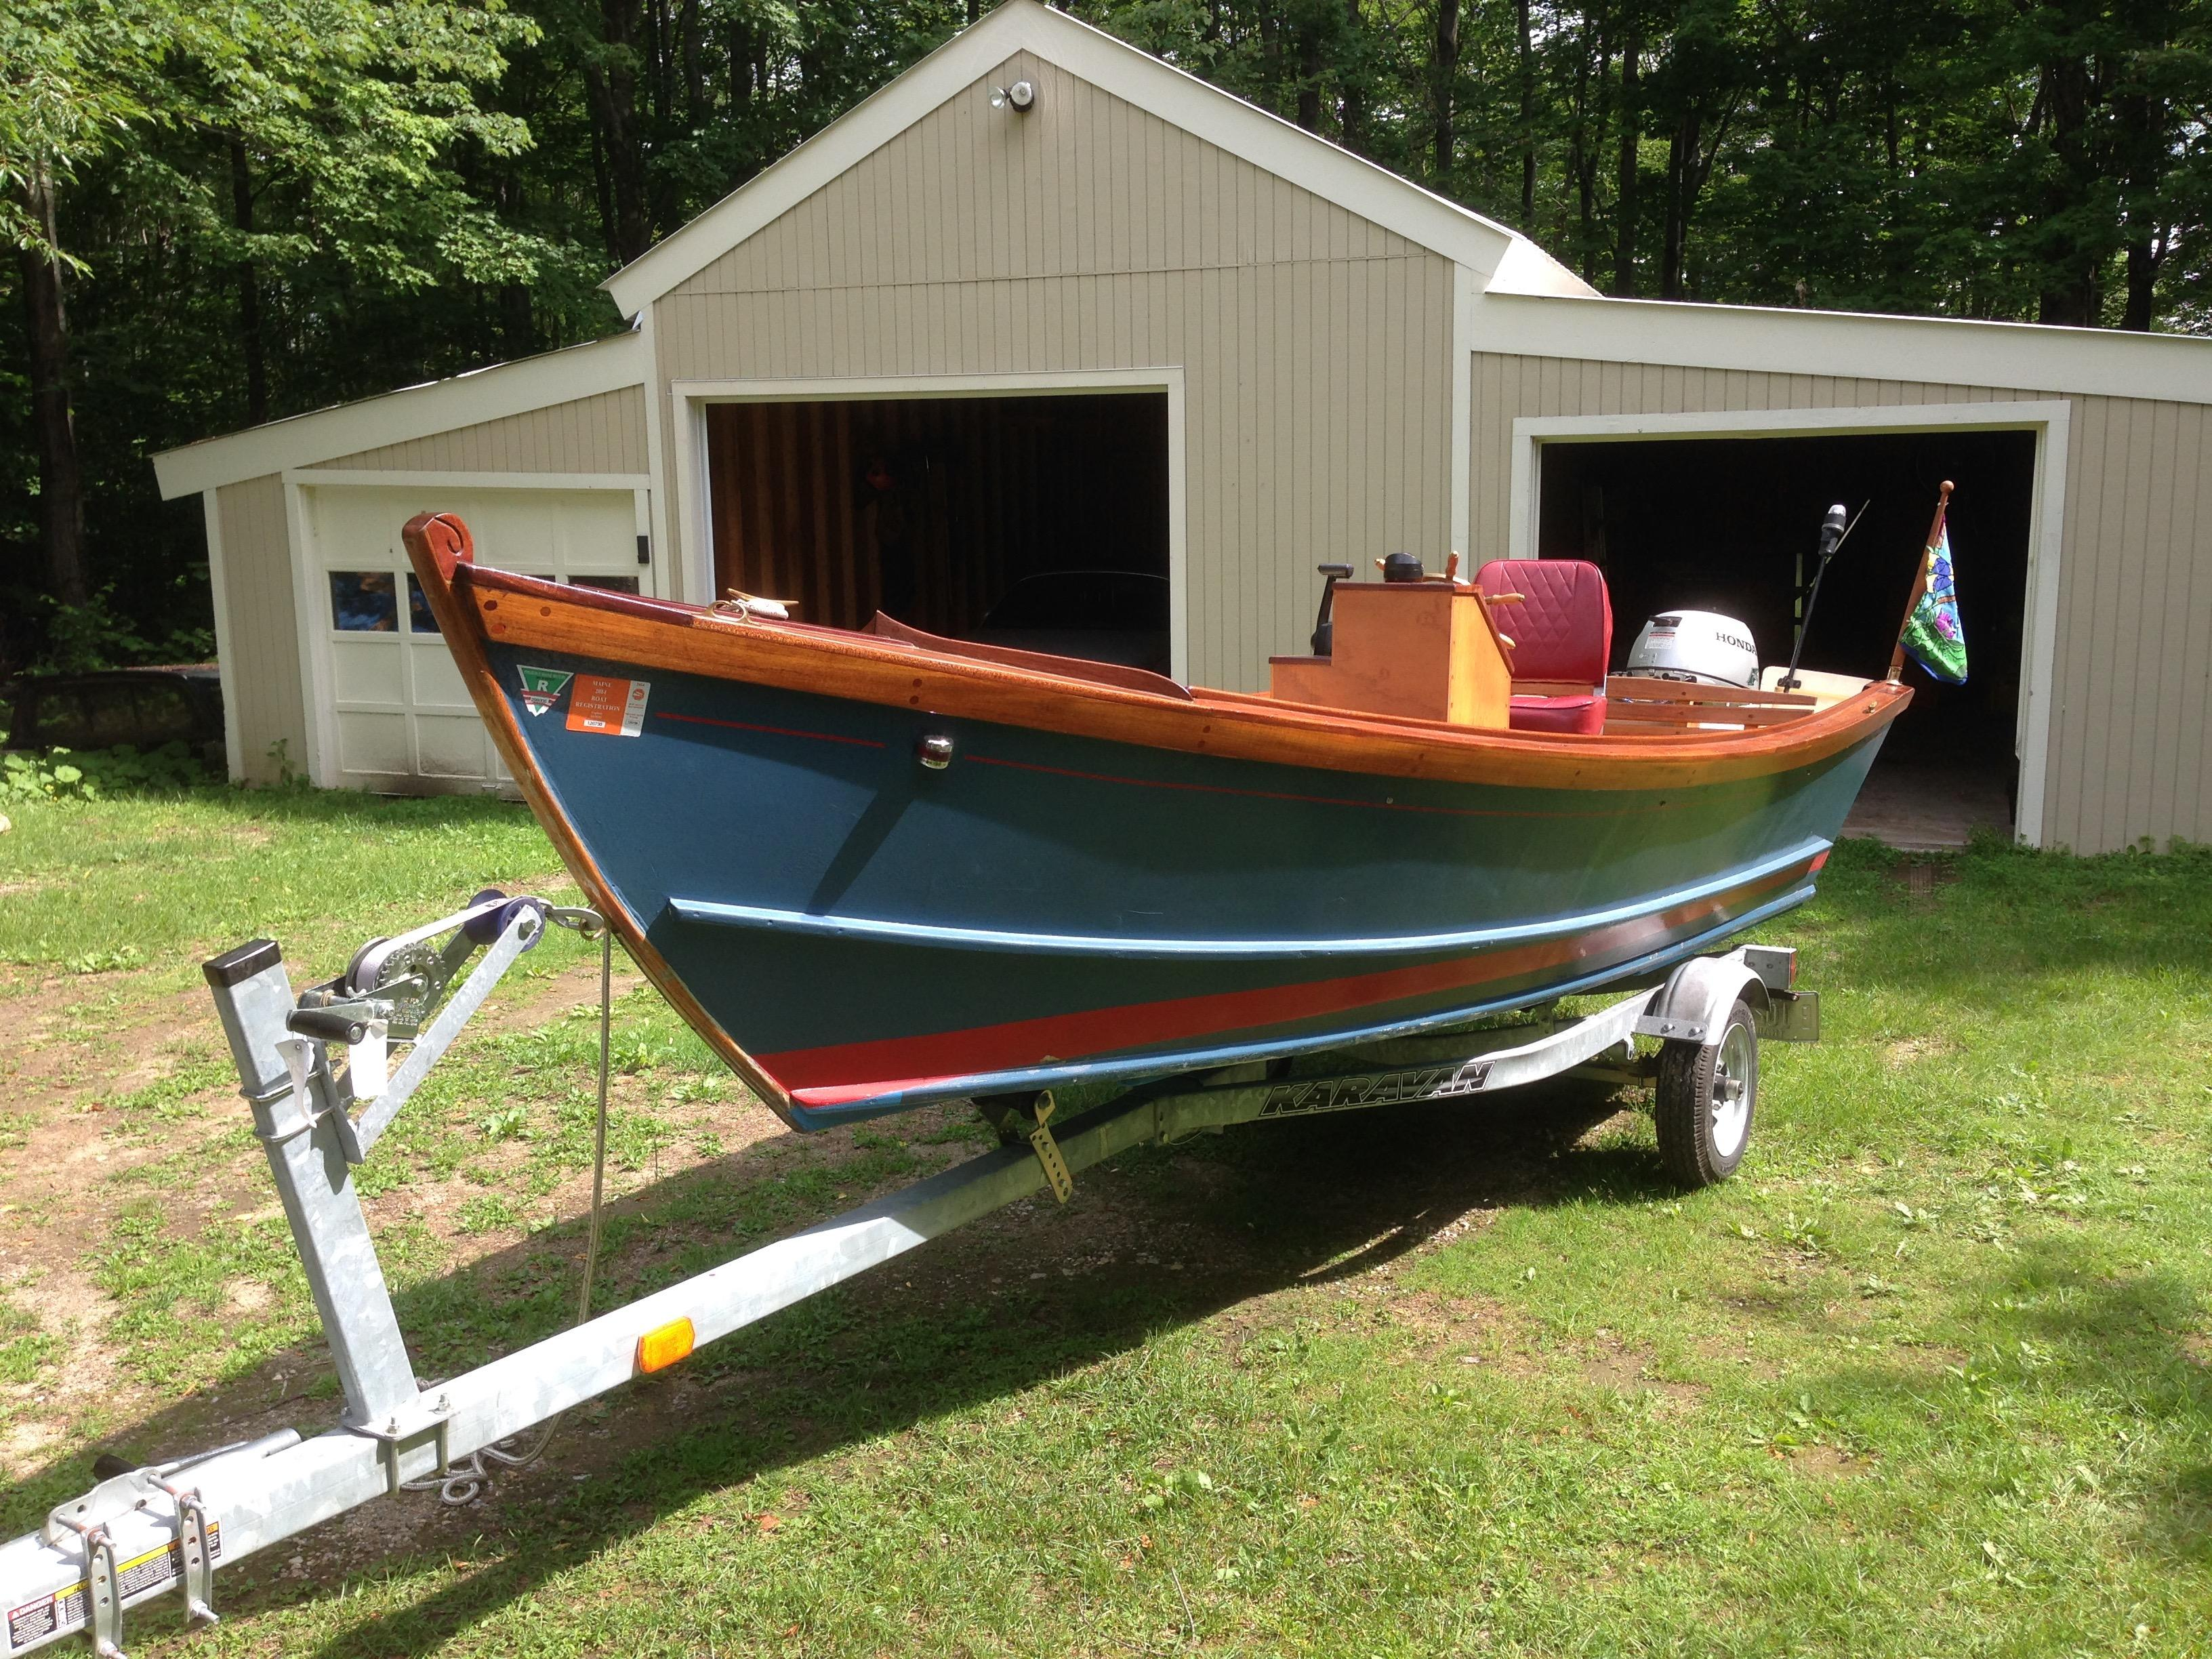 Shelburne (VT) United States  City pictures : 2007 San Juan Dory Power Boat For Sale www.yachtworld.com